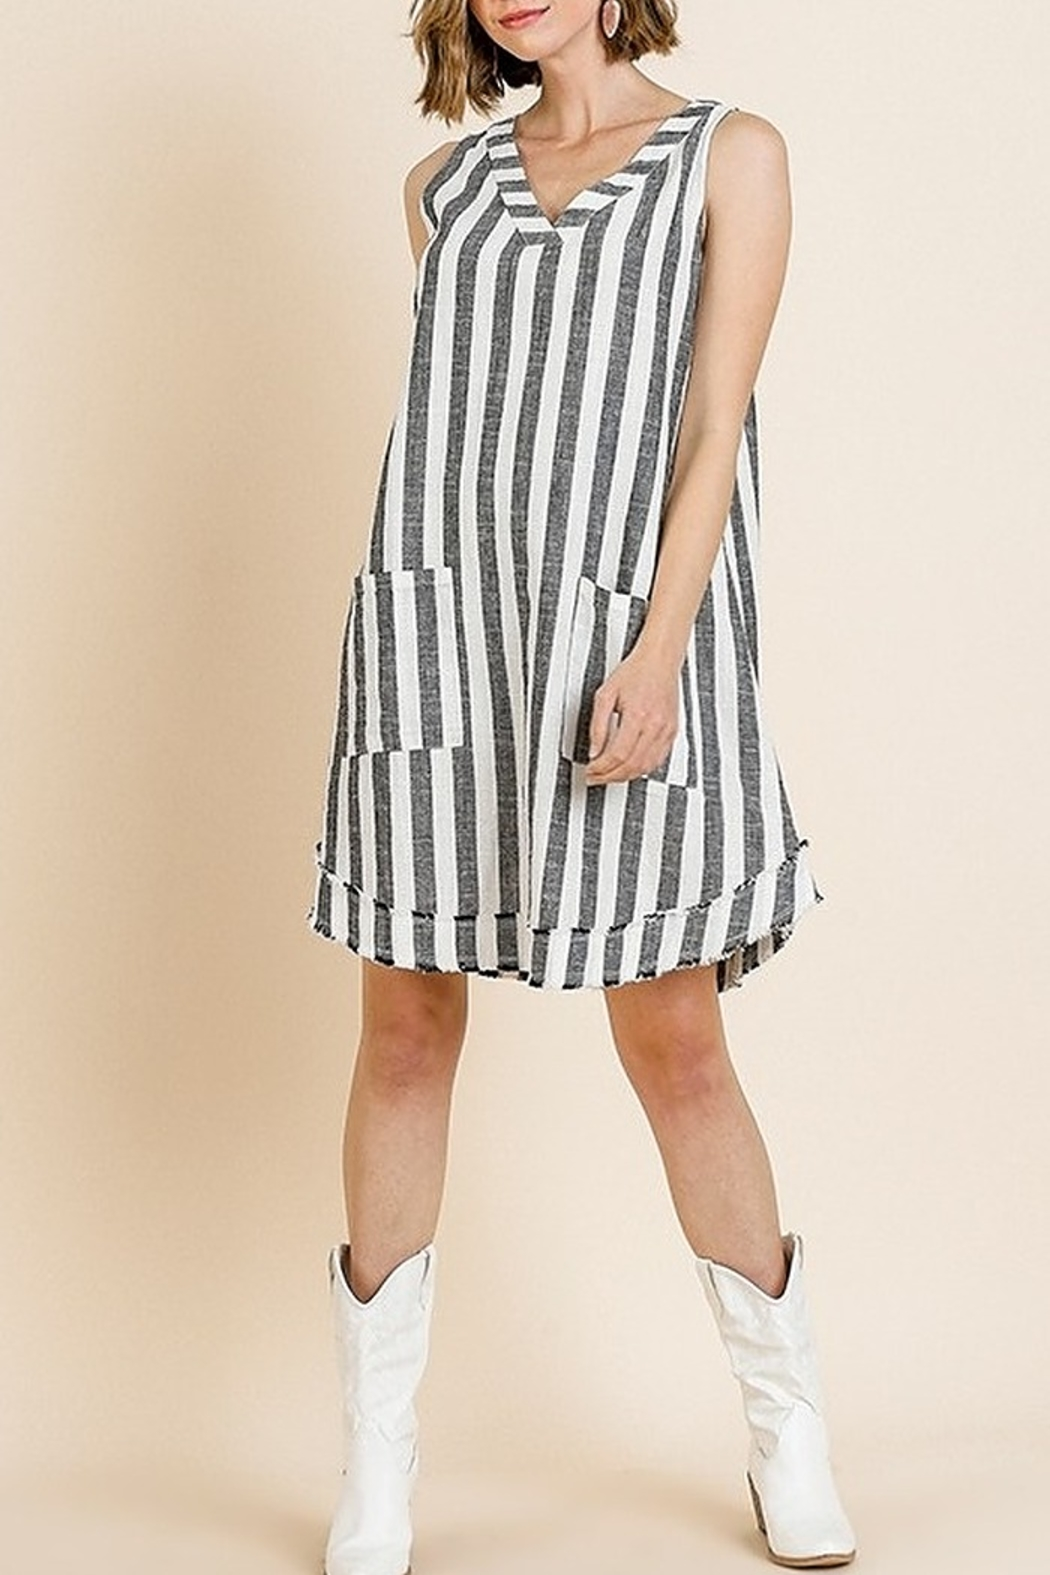 Umgee  Striped Sleeveless V-Neck Shift Dress with Front Pockets and Frayed Scoop Hem - Front Full Image